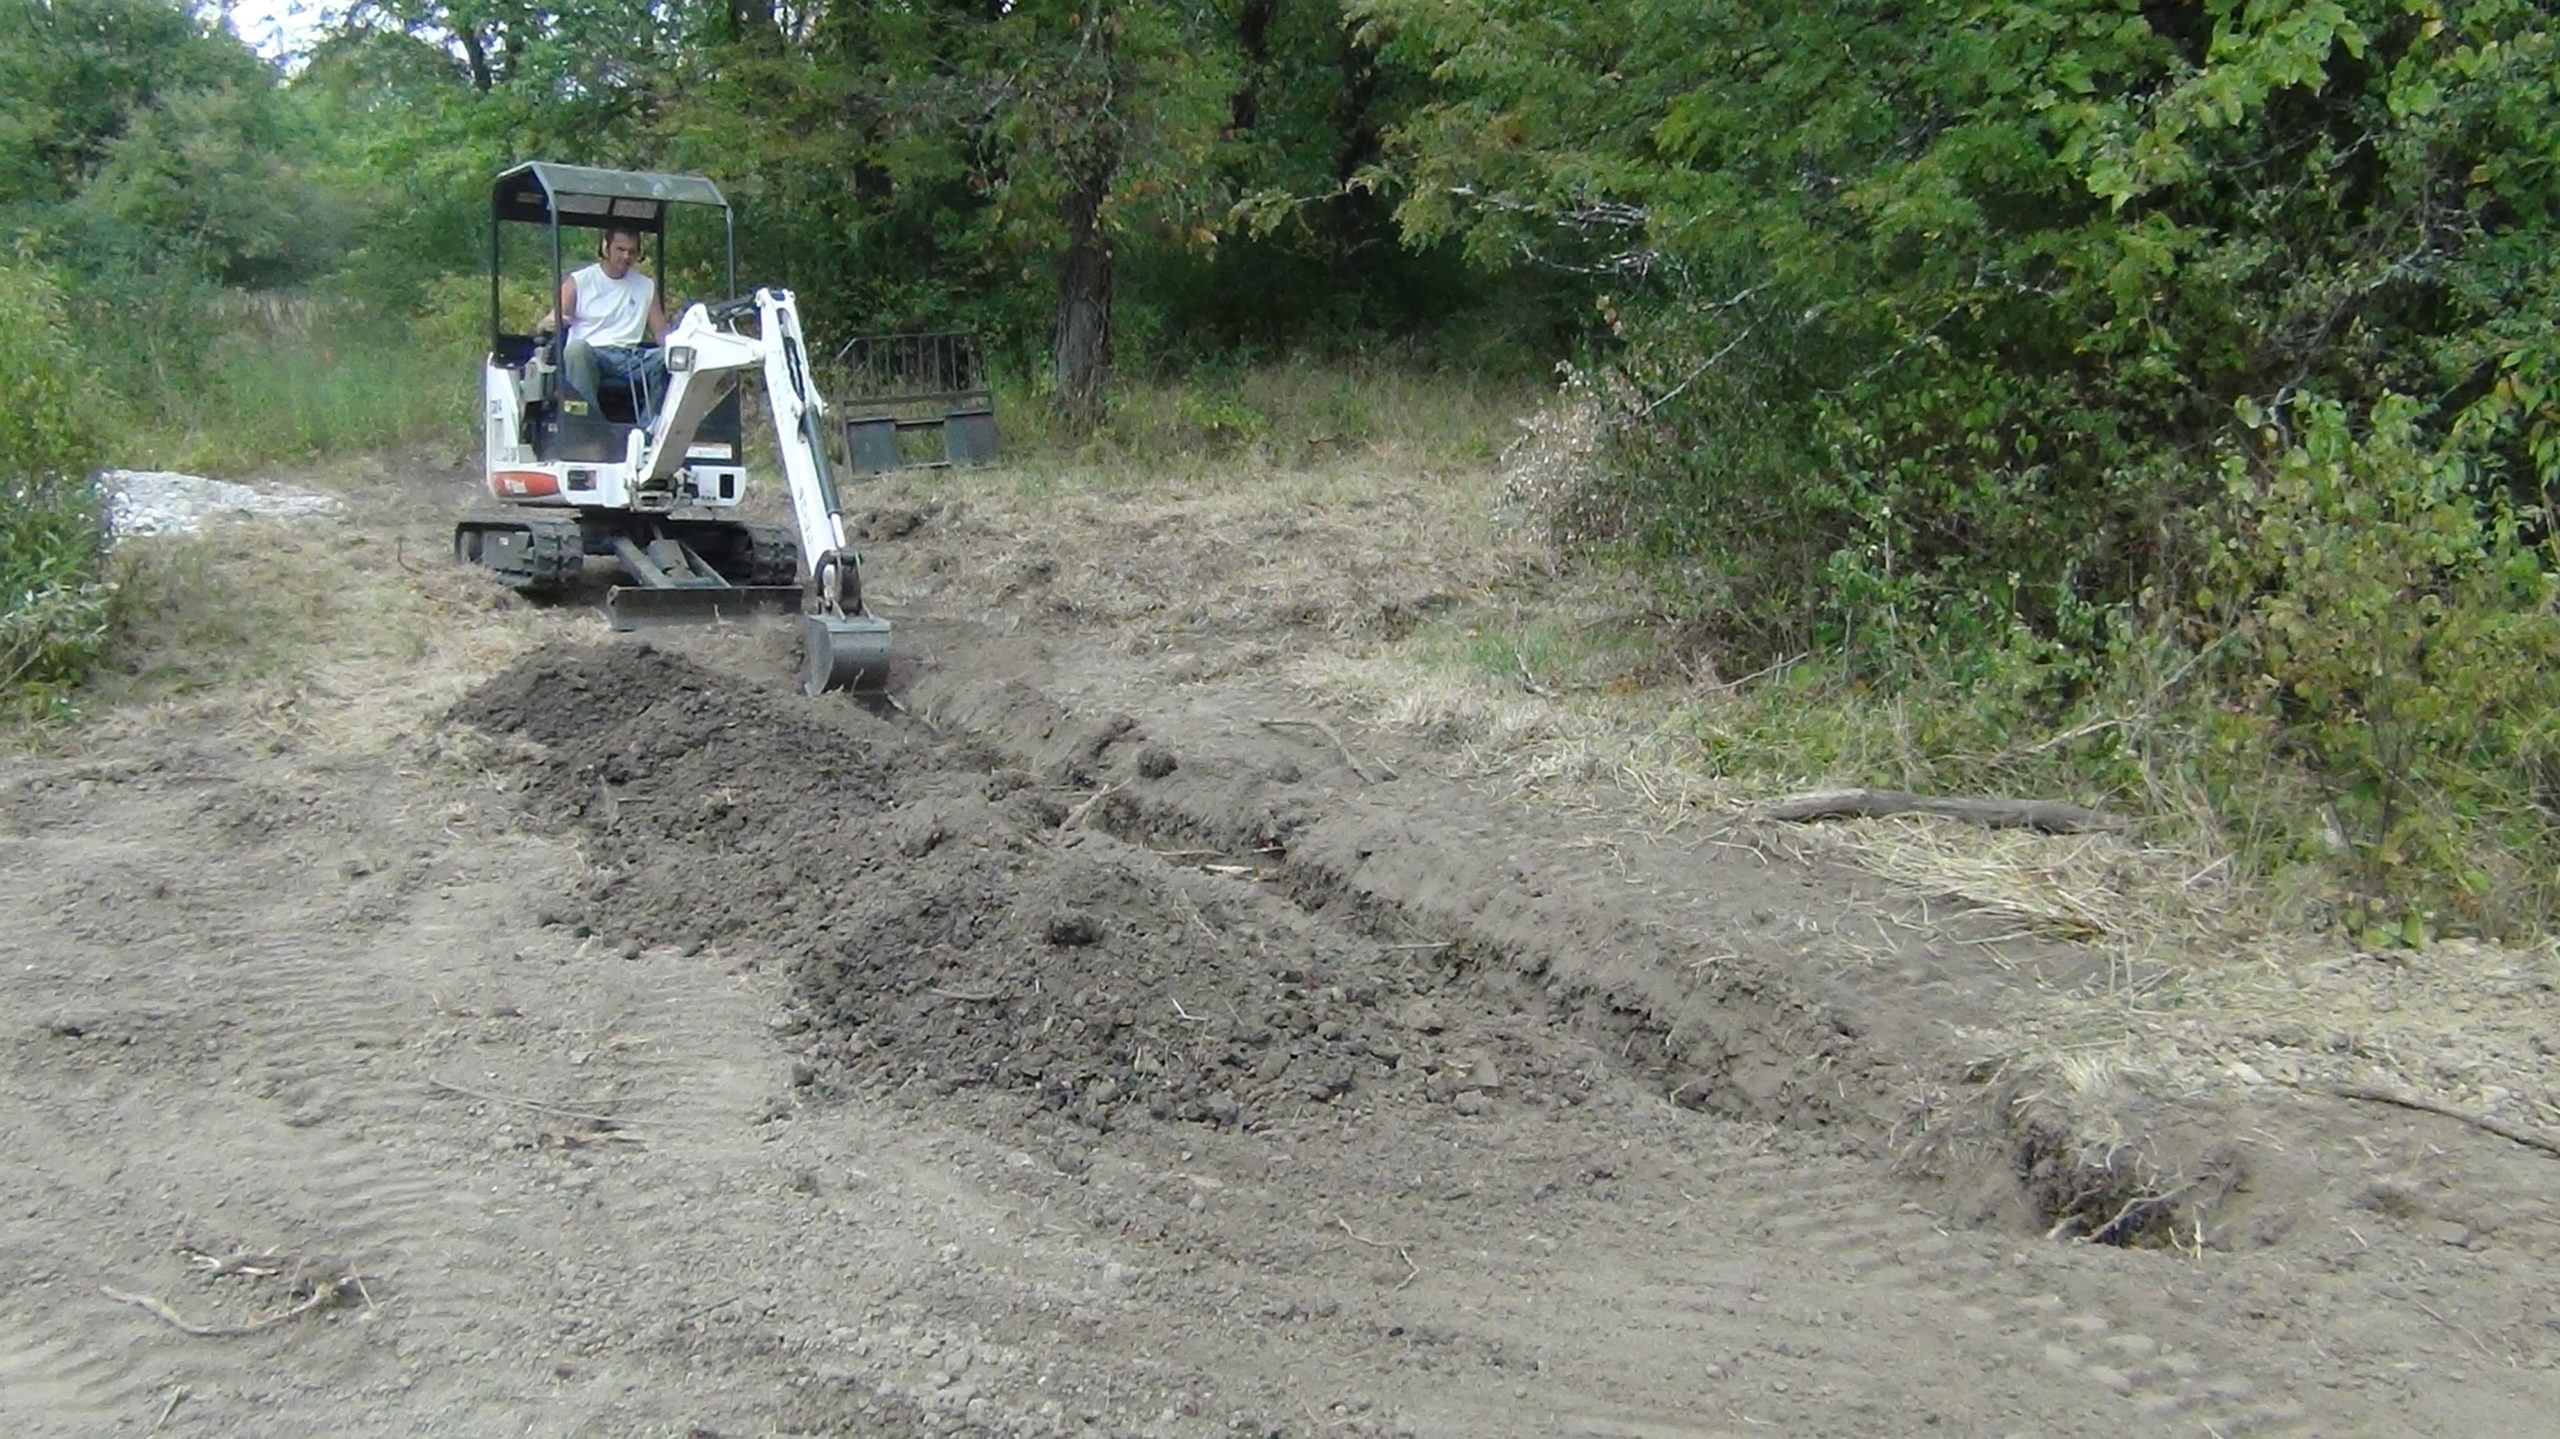 Individual on a bob cat, small digging device, digging a drainage trench in the exposed dirt.